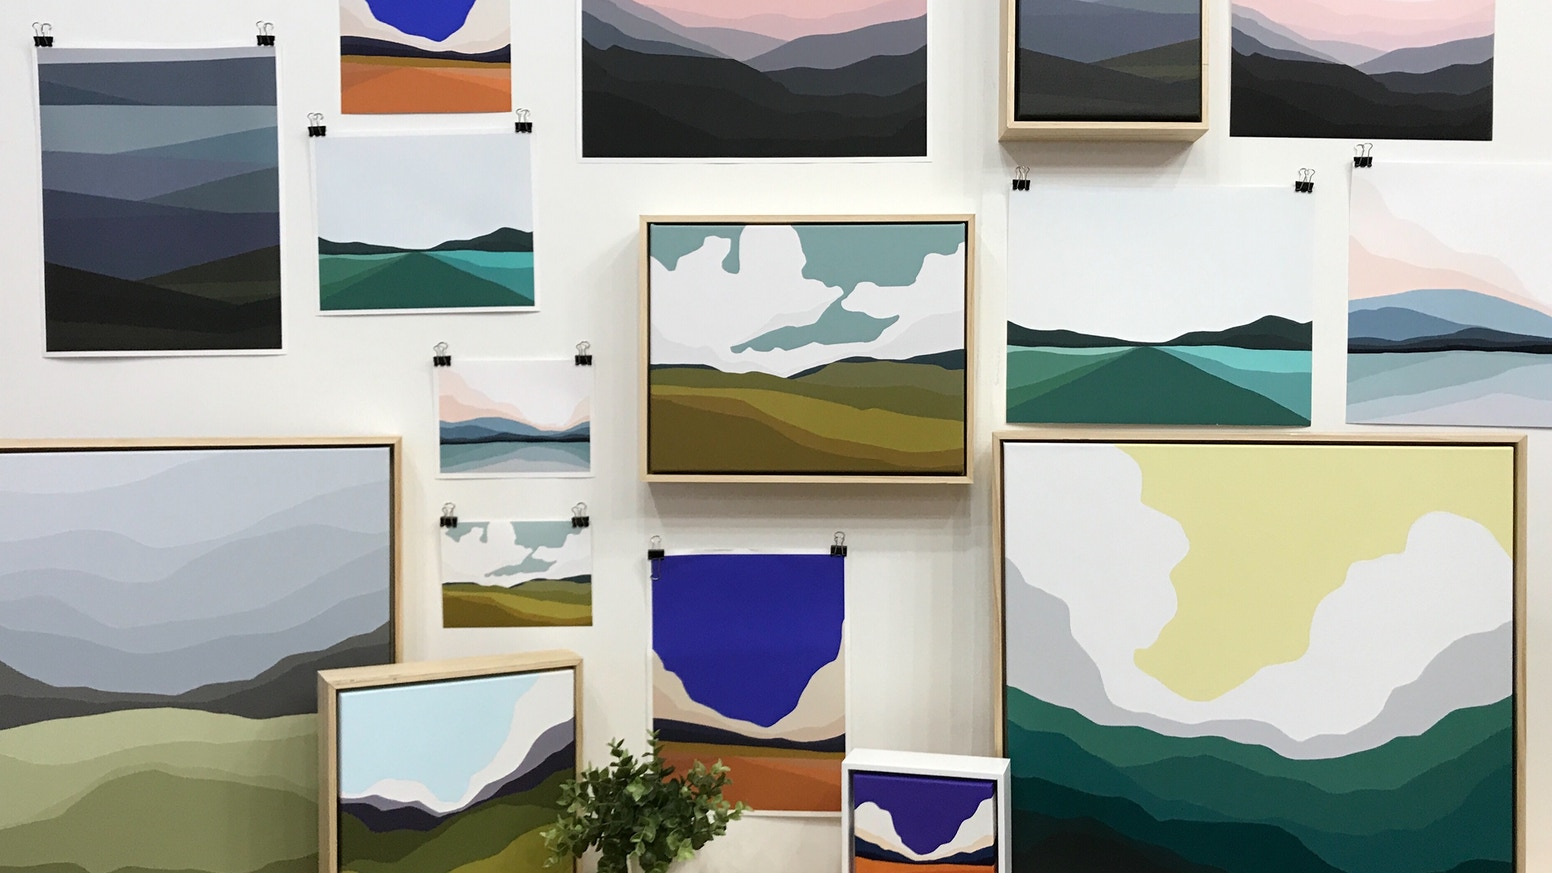 Colleen O'Connor is an acrylic painter expanding into a more diverse product line and looking to finish out her studio space.